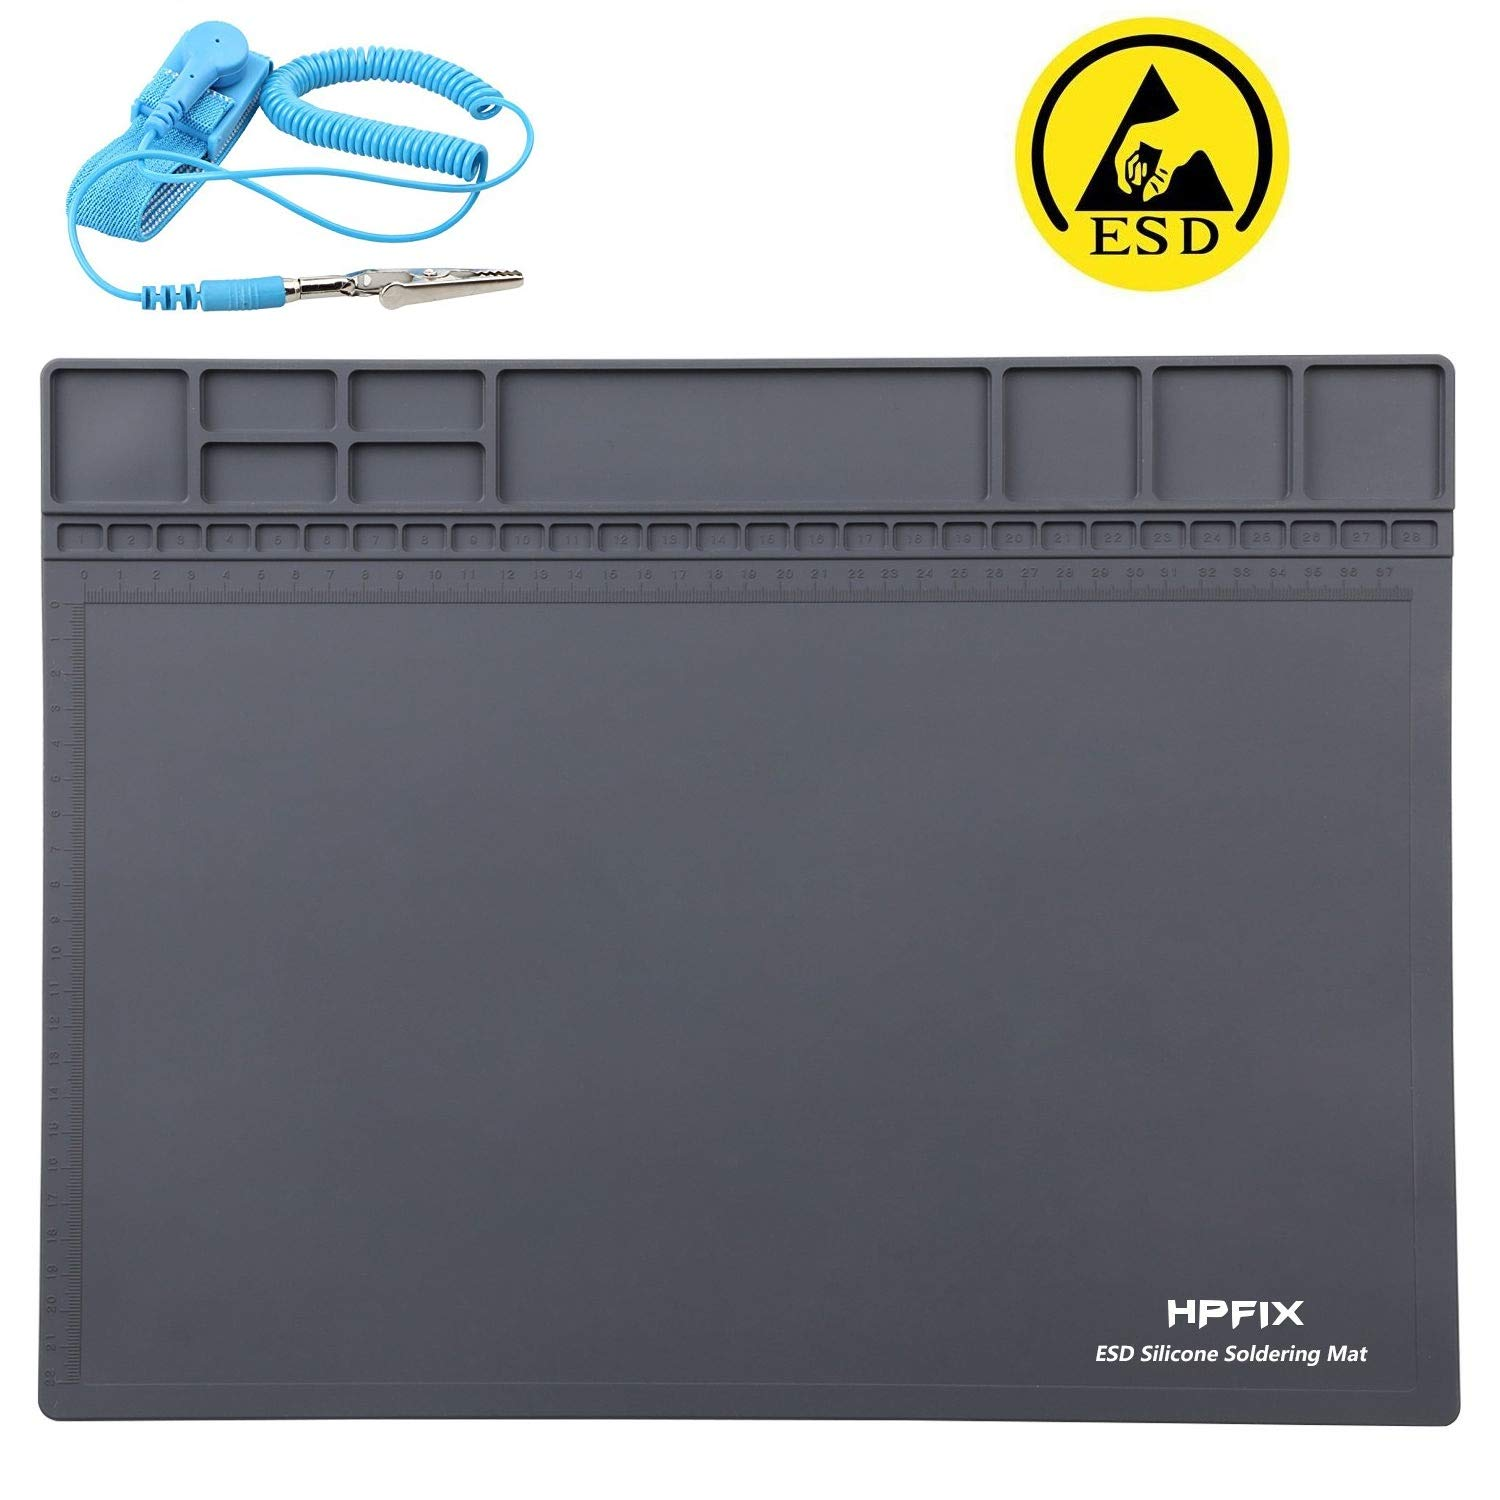 Anti-Static Mat ESD Safe for Electronic, HPFIX Silicone Soldering Heat Insulation Repair Mat for iPhone iPad iMac, Laptop, Computer, 932°F Heat Resistant 15.9'' x 12'' Grey (Contain Gift ESD Wristband) by HPFIX